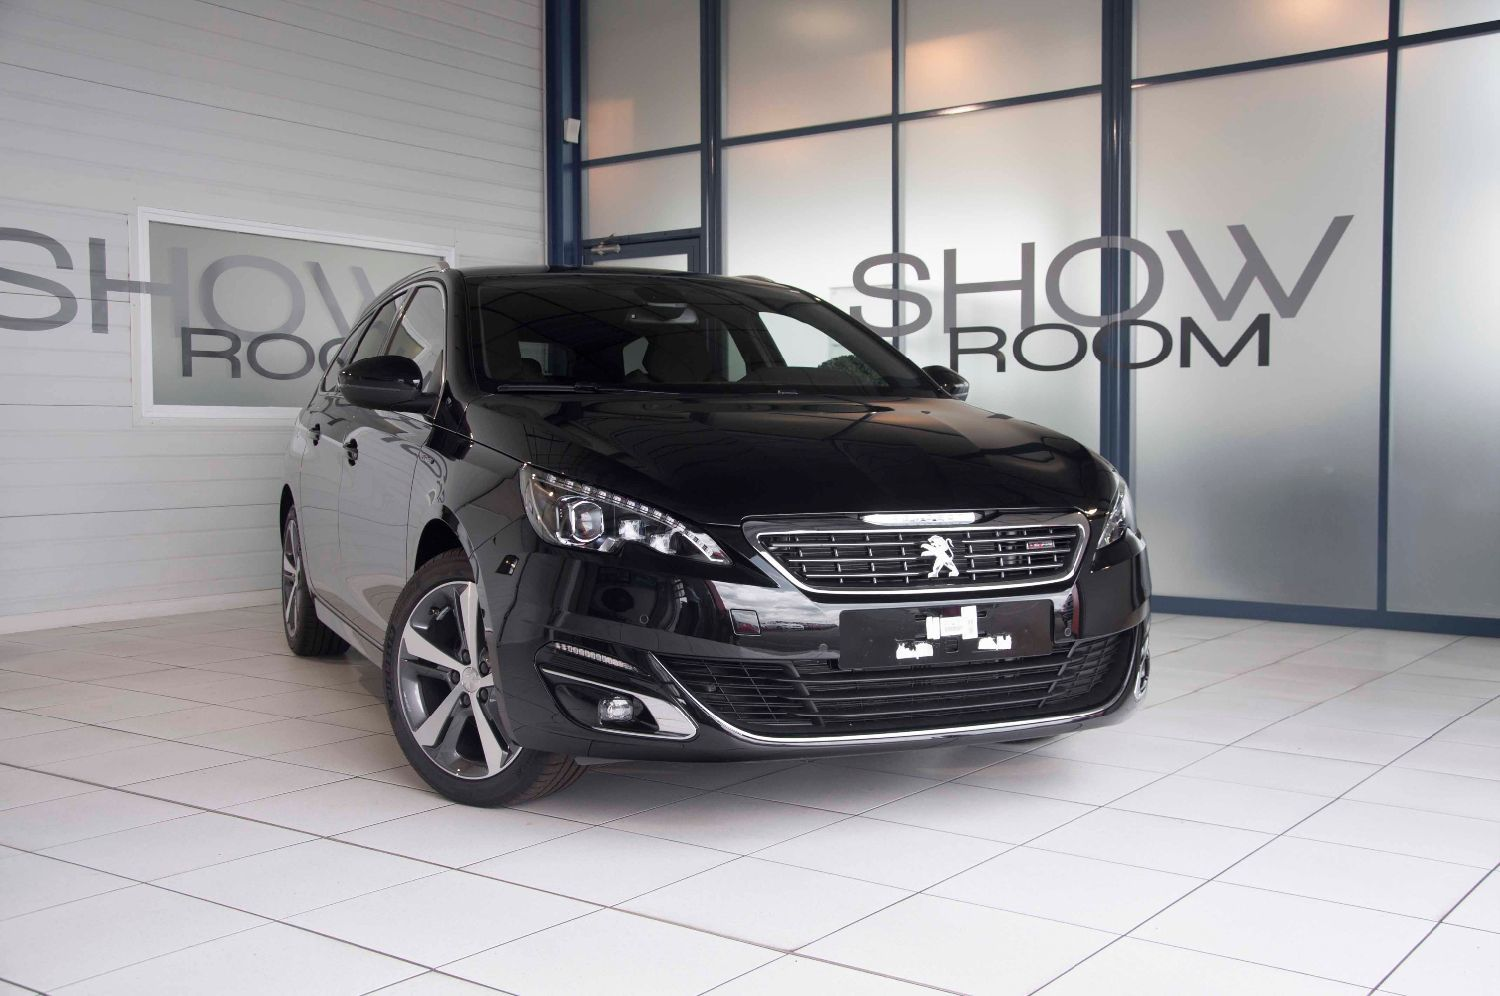 voiture peugeot 308 sw 1 6 bluehdi 120 ch gt line occasion diesel 2017 100 km 24700. Black Bedroom Furniture Sets. Home Design Ideas